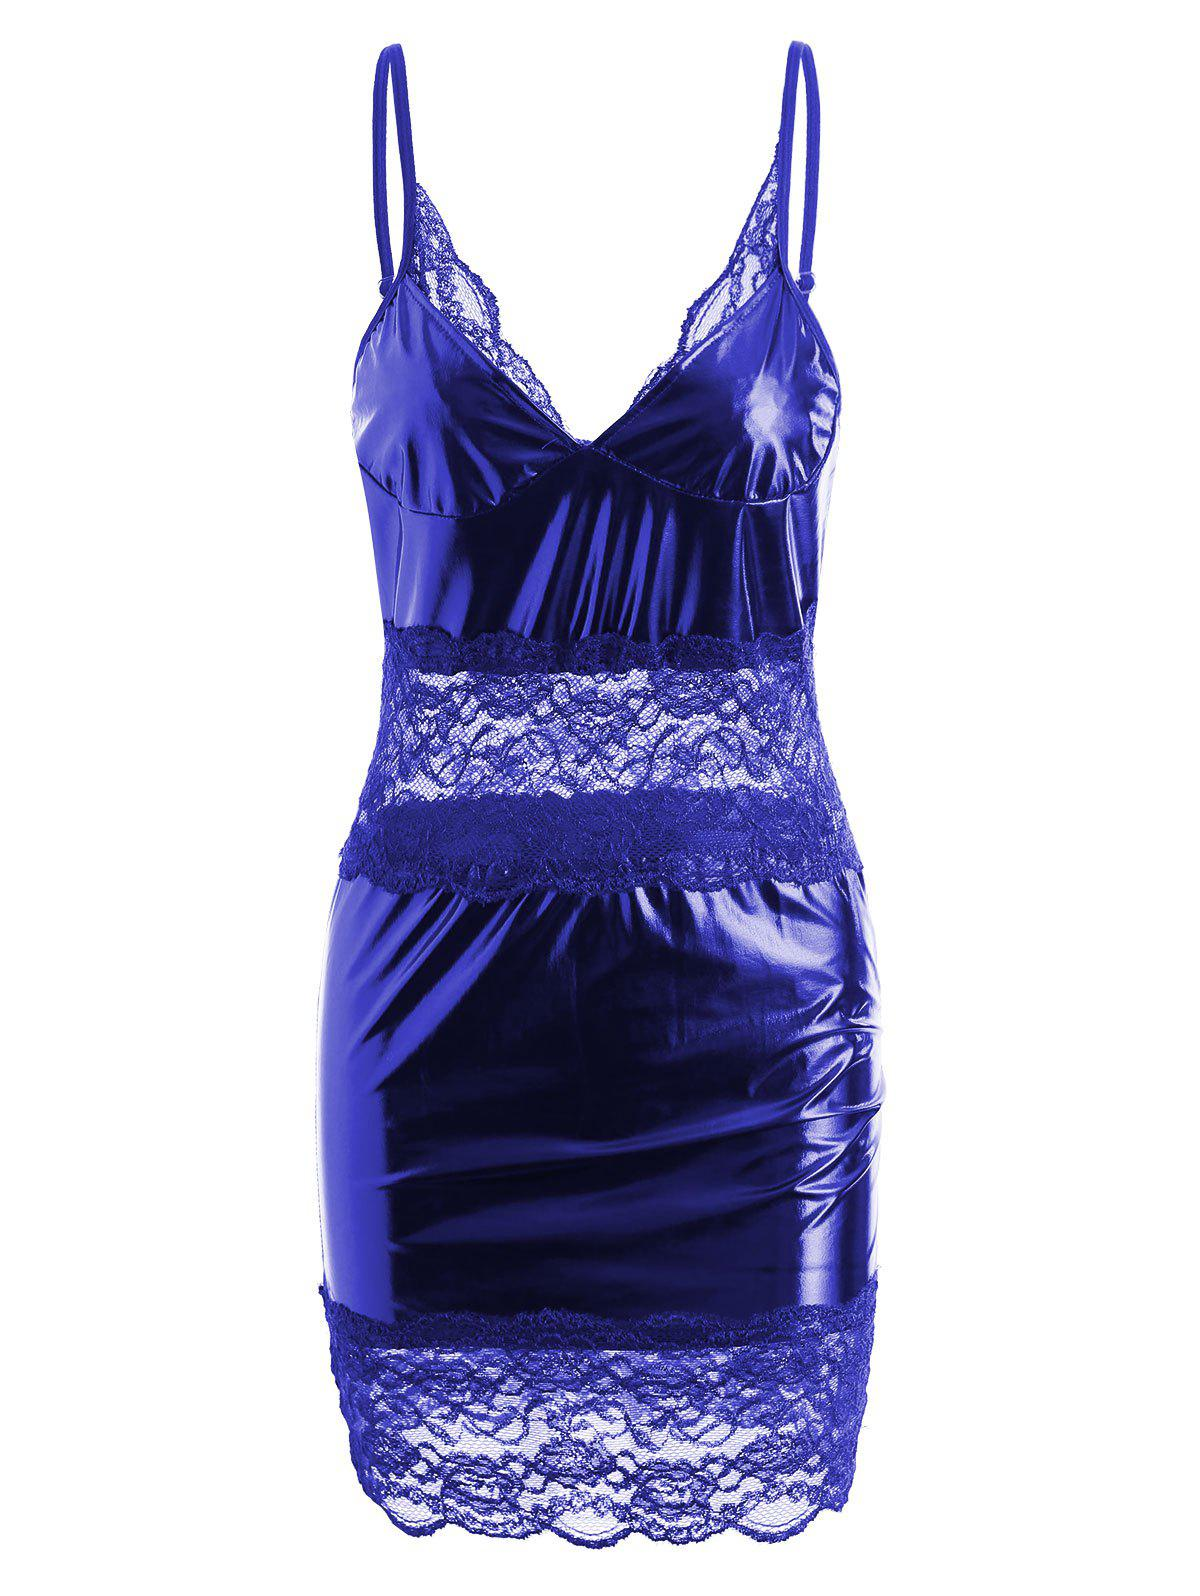 Lace Insert Sheer Slip Club Dress - BLUE L